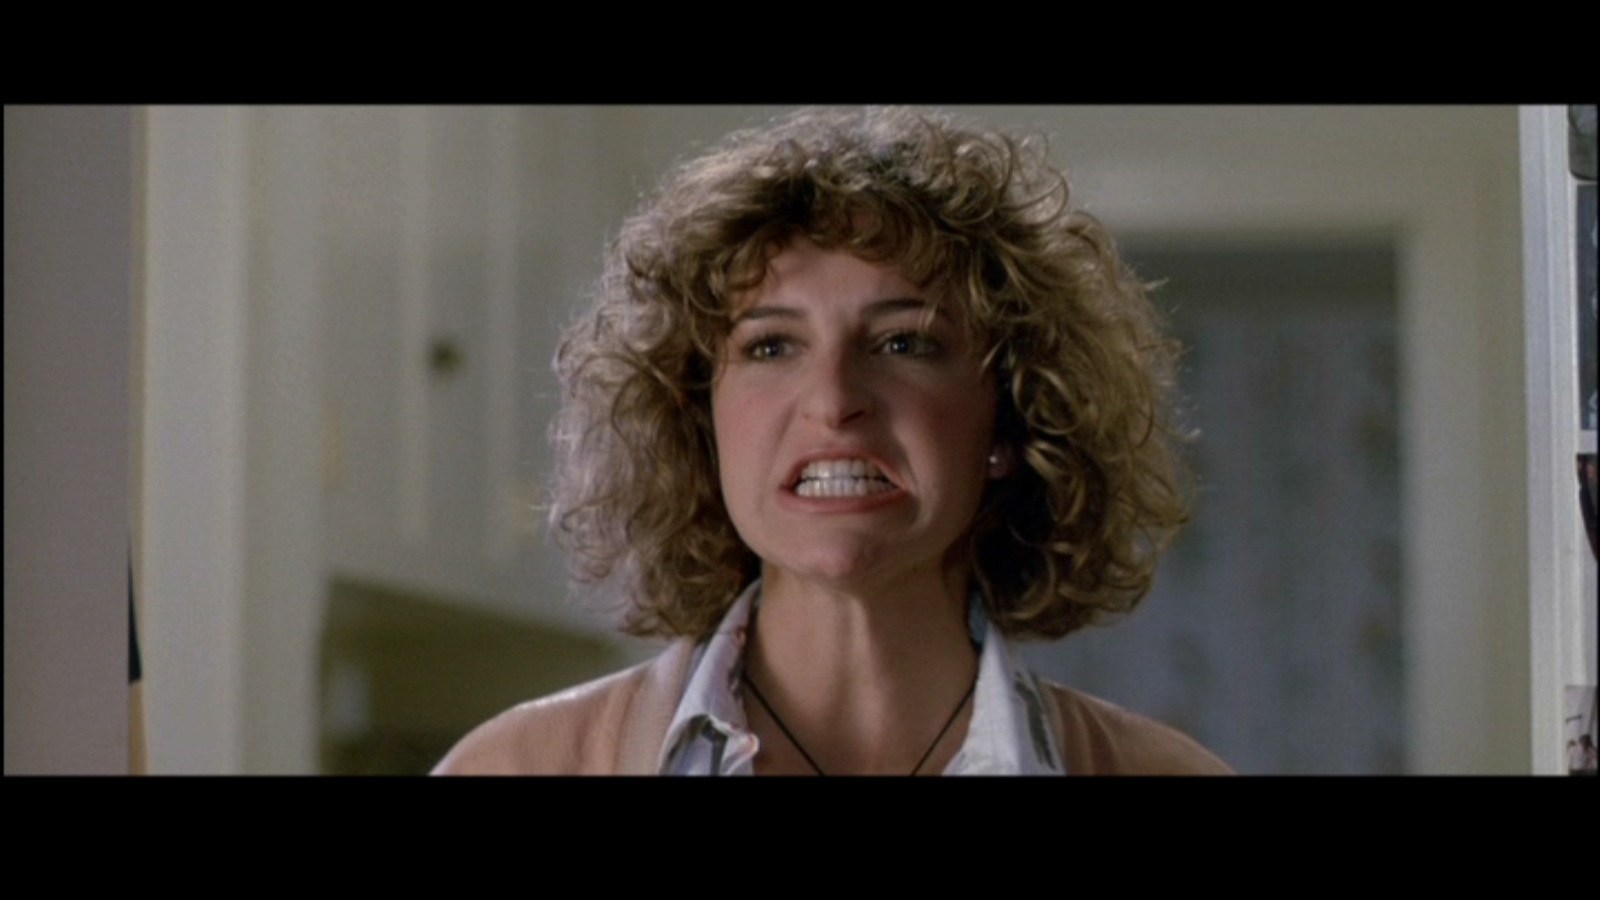 An exclusive interview with Jennifer Grey